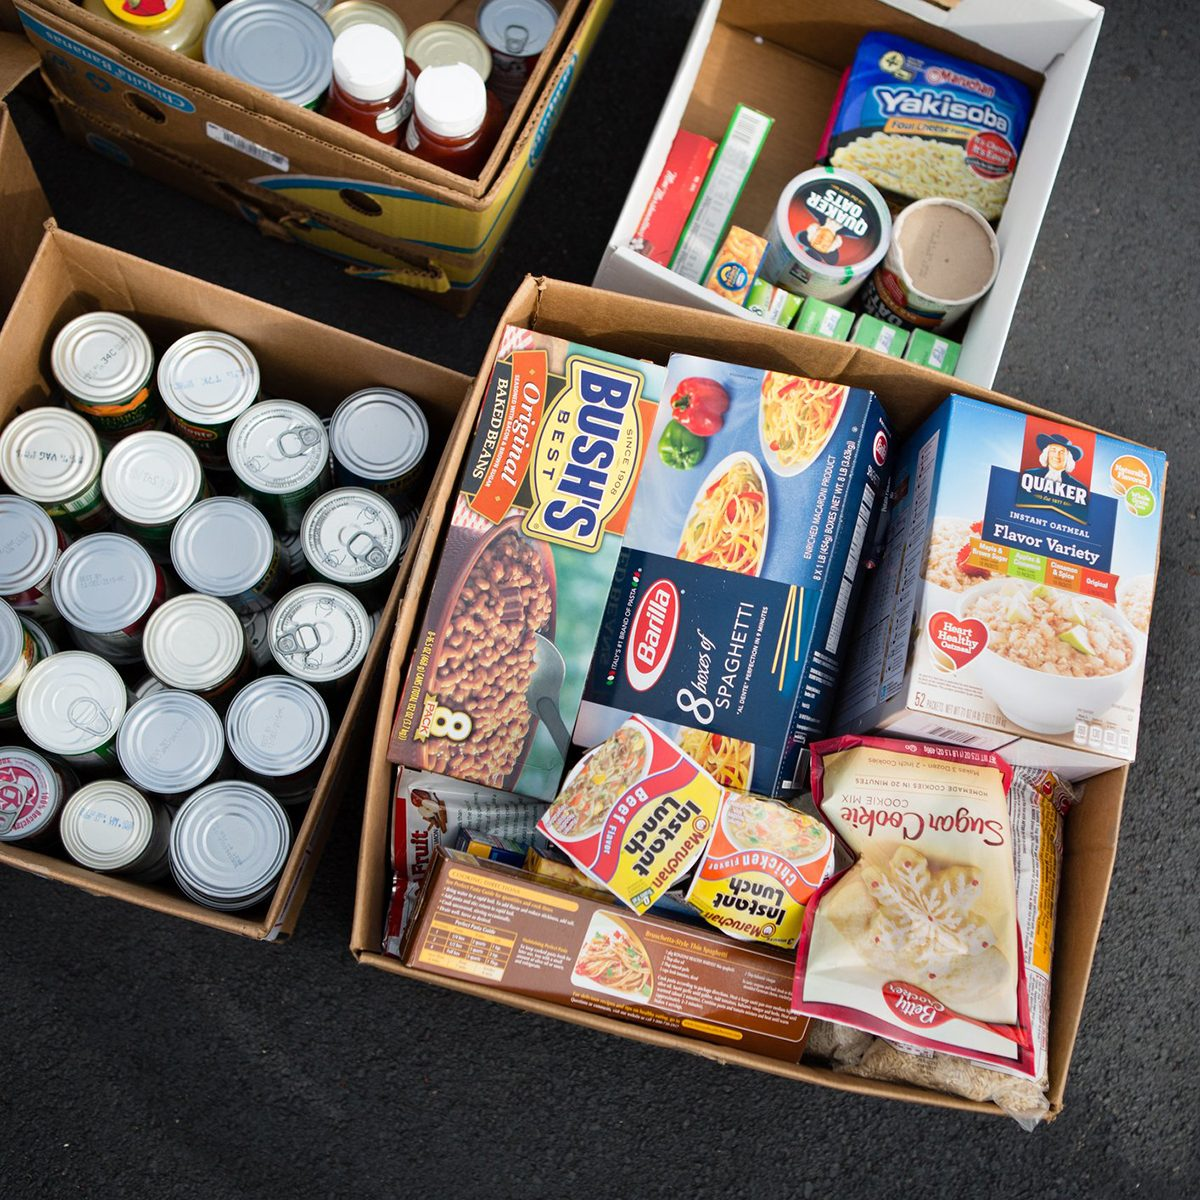 Boxes filled with cans and boxes of food